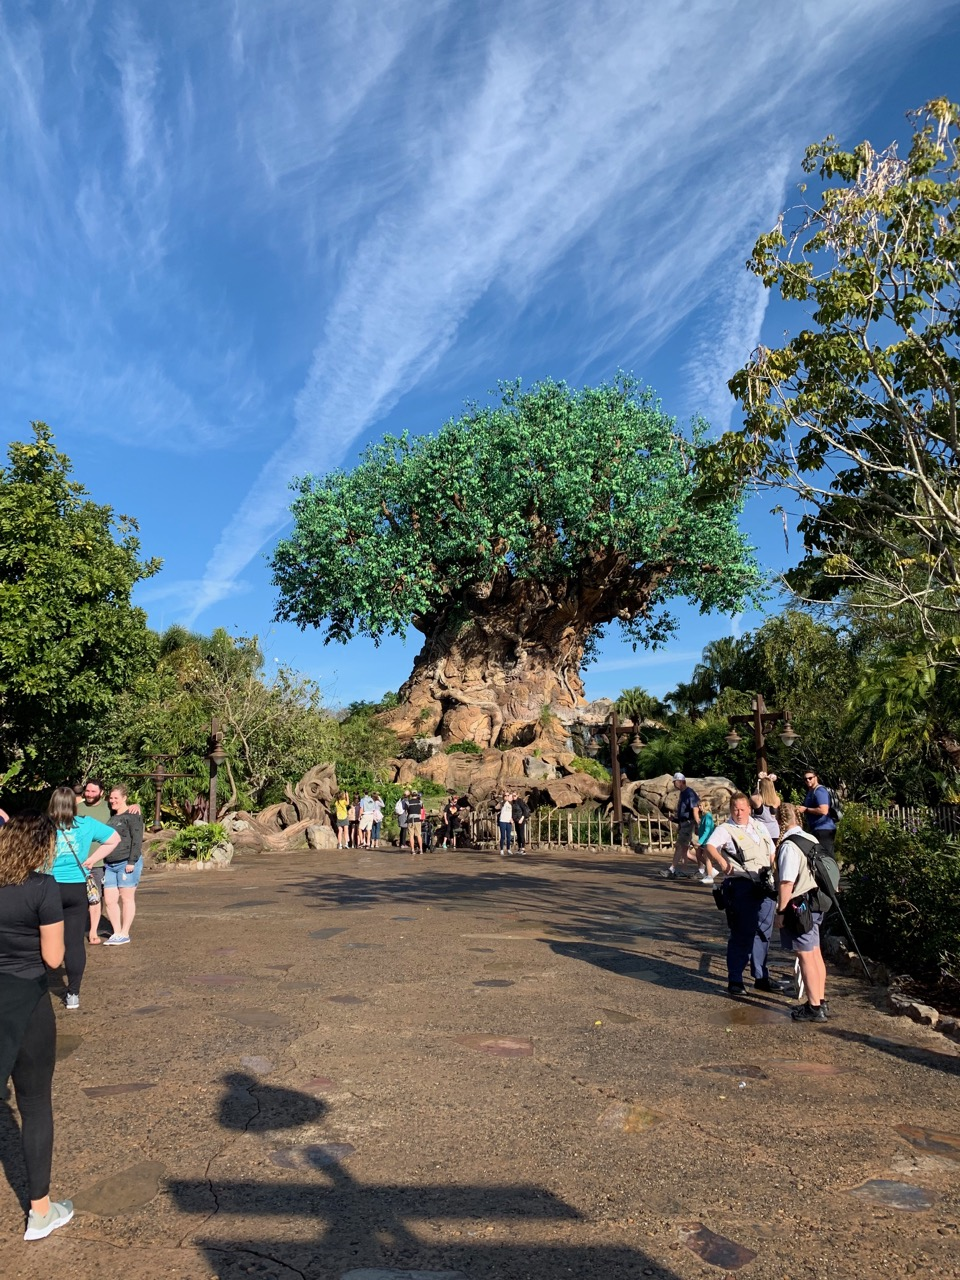 disney animal kingdom hours 02 tree.jpeg